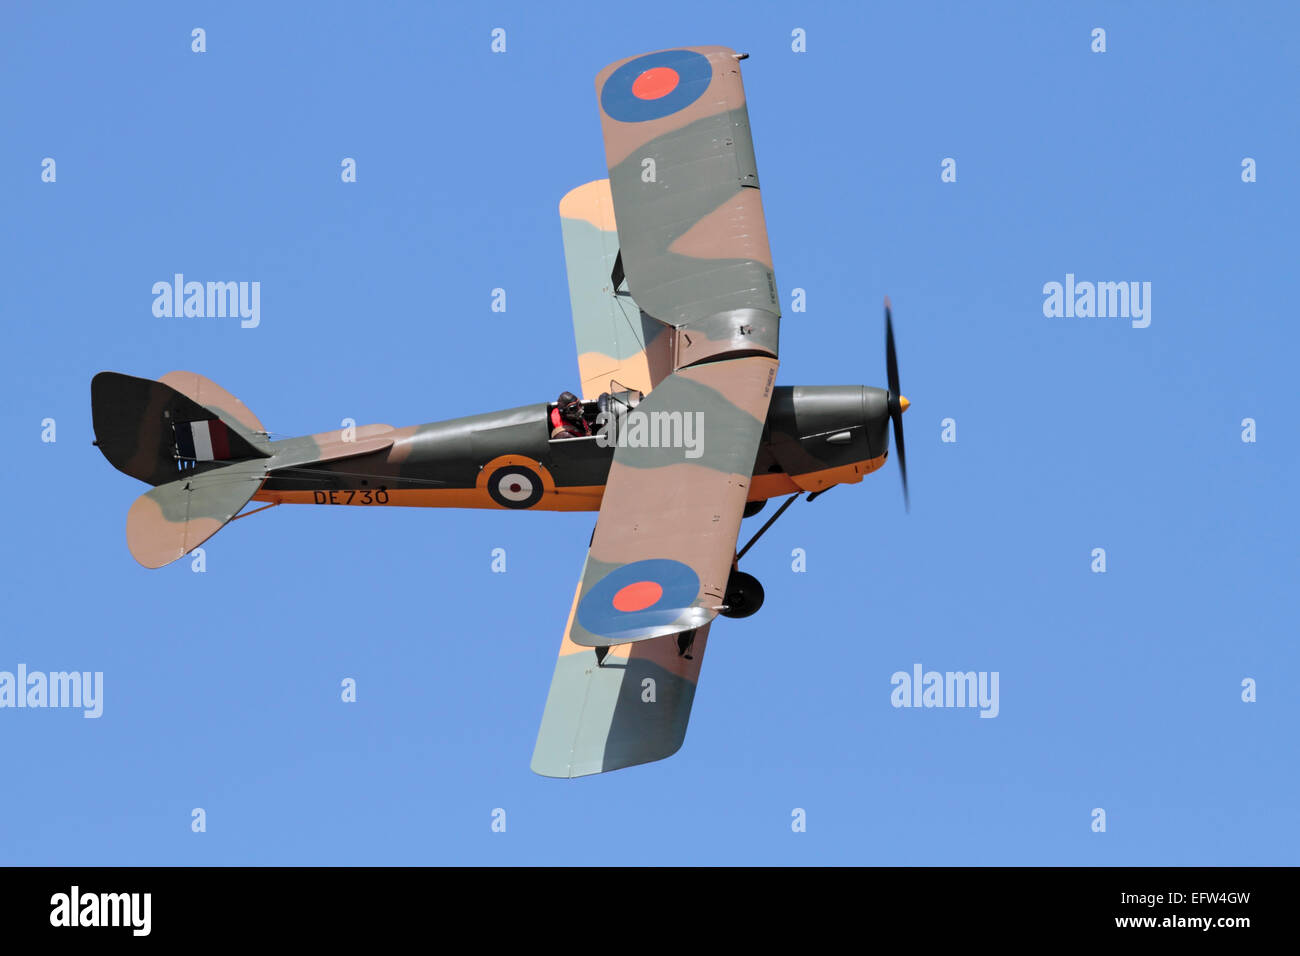 De Havilland Tiger Moth vintage biplane aircraft in the colours of a Royal Air Force World War II training plane - Stock Image